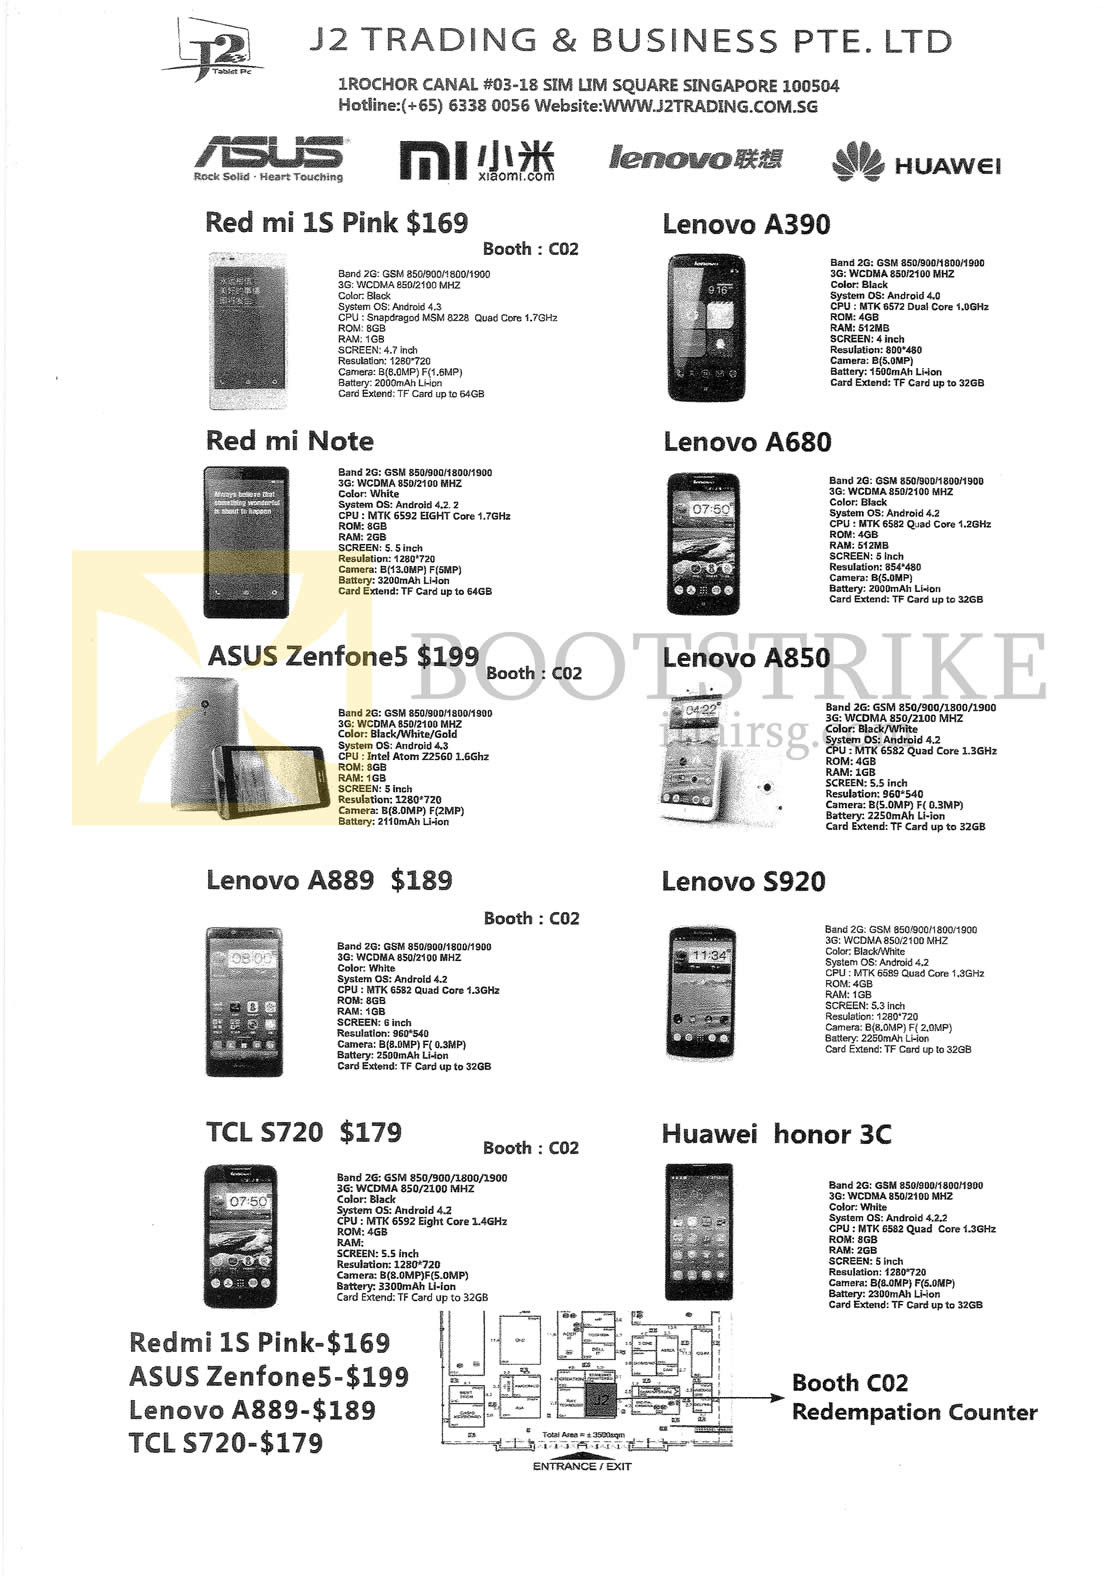 J2 trading mobile phones redmi 1s pink redmi note asus zenfone 5 comex 2014 price list image brochure of j2 trading mobile phones redmi 1s pink redmi sciox Choice Image